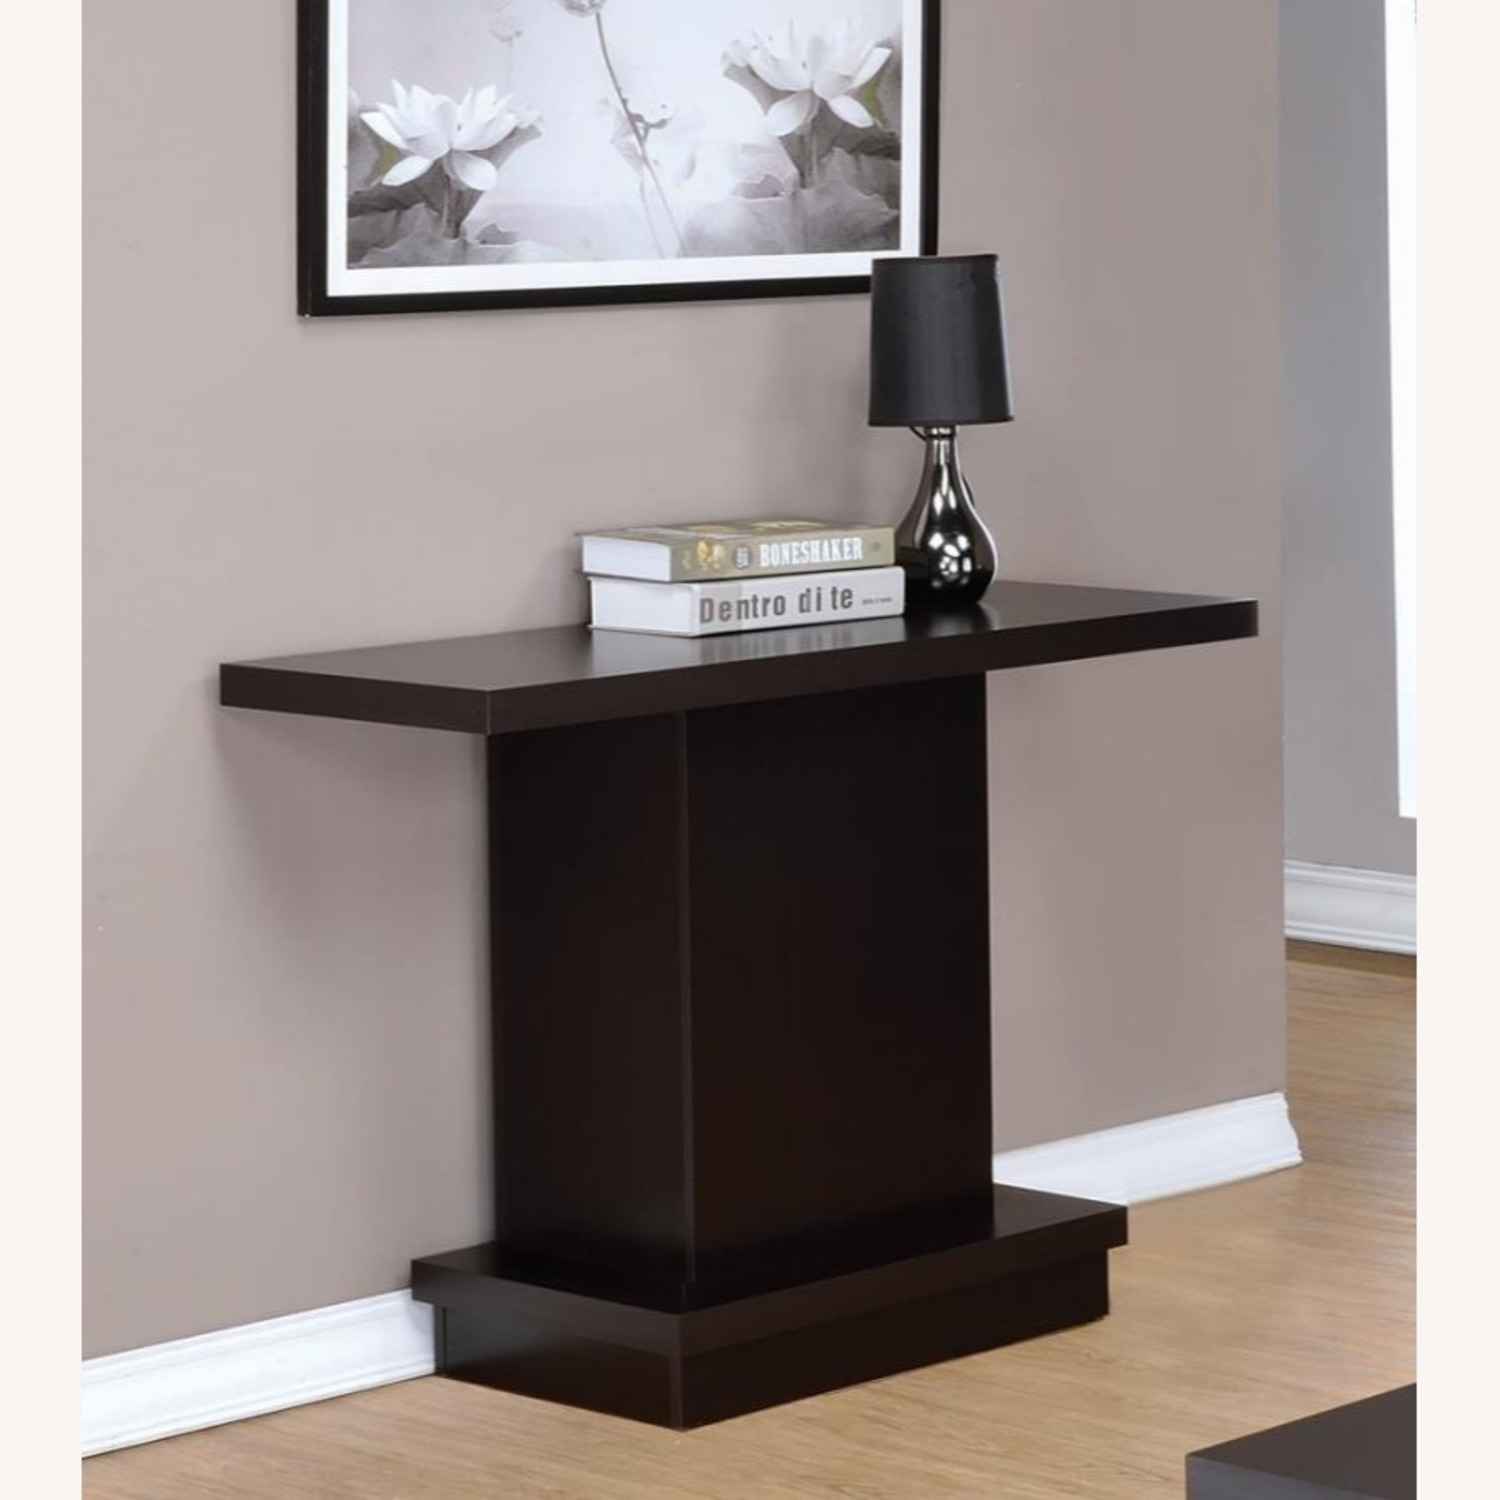 Pedestal-Style Sofa Table In Ric Cappuccino Finish - image-1